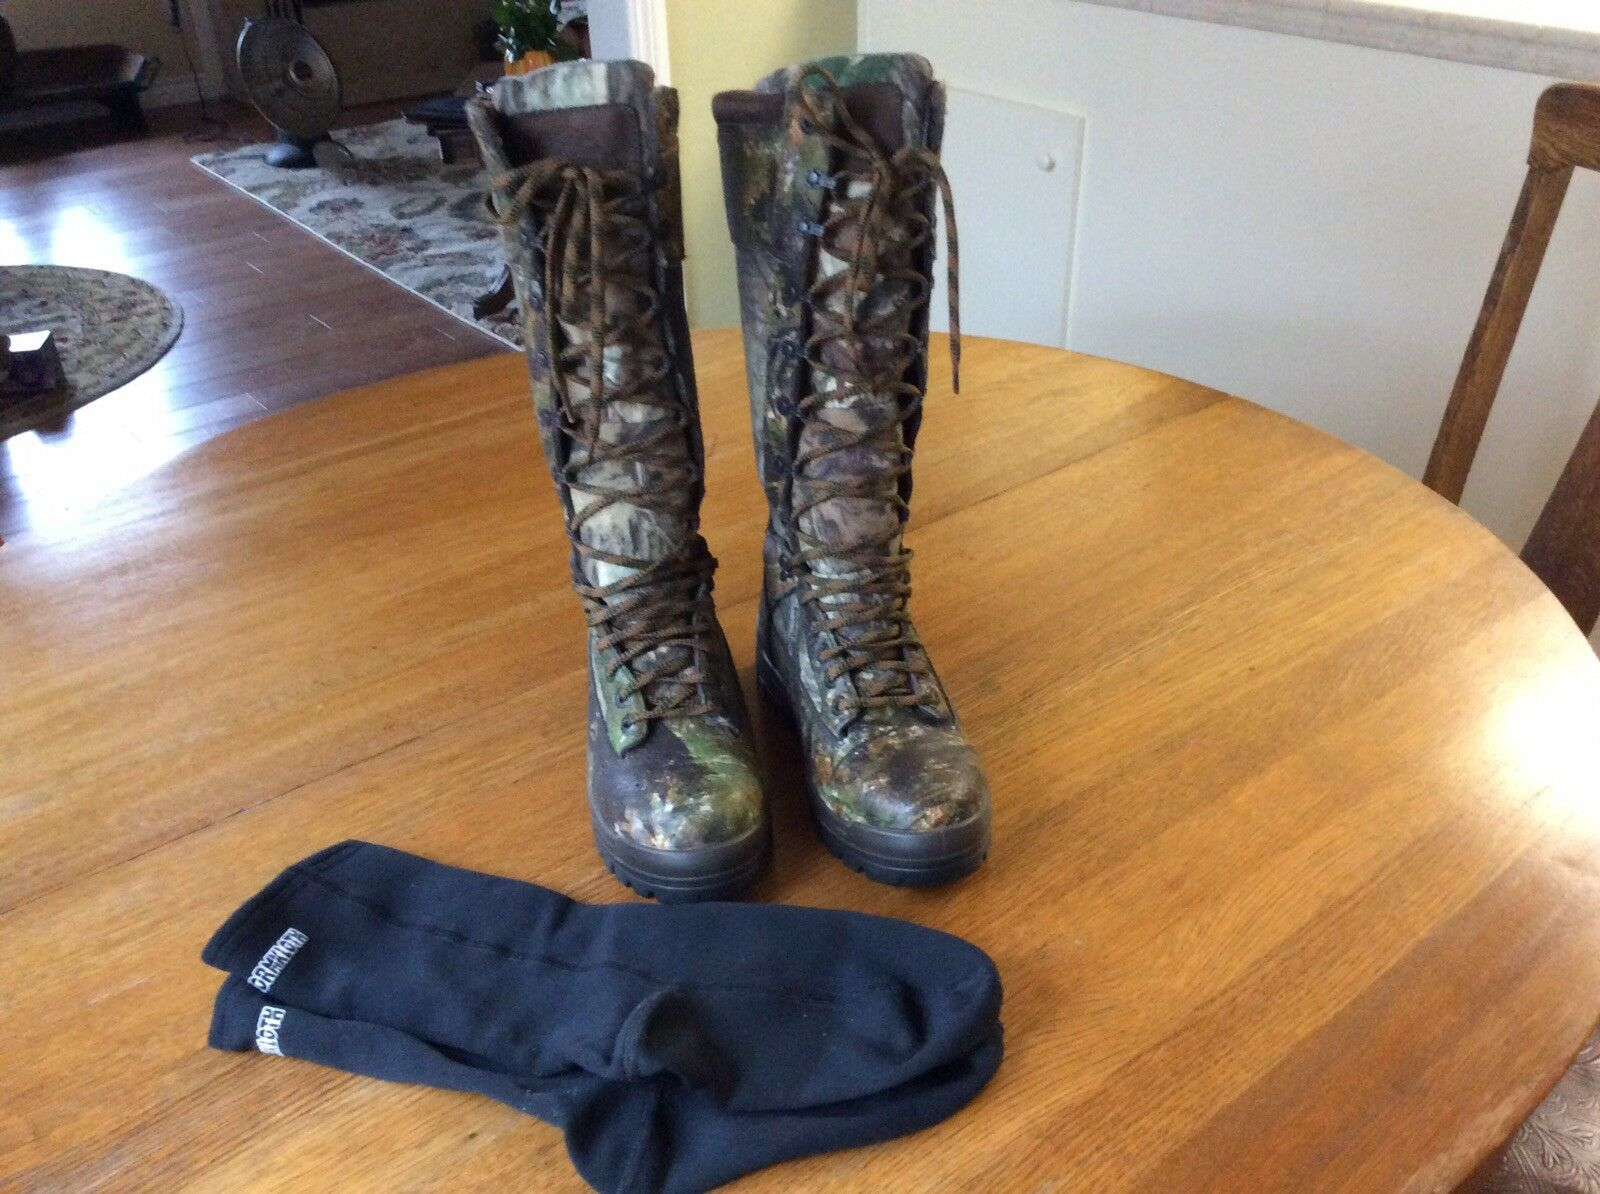 Cabelas Gore-Tex Camouflage bottes 7.5 W Homme Camouflage Chasse bottes High Top Lace Up